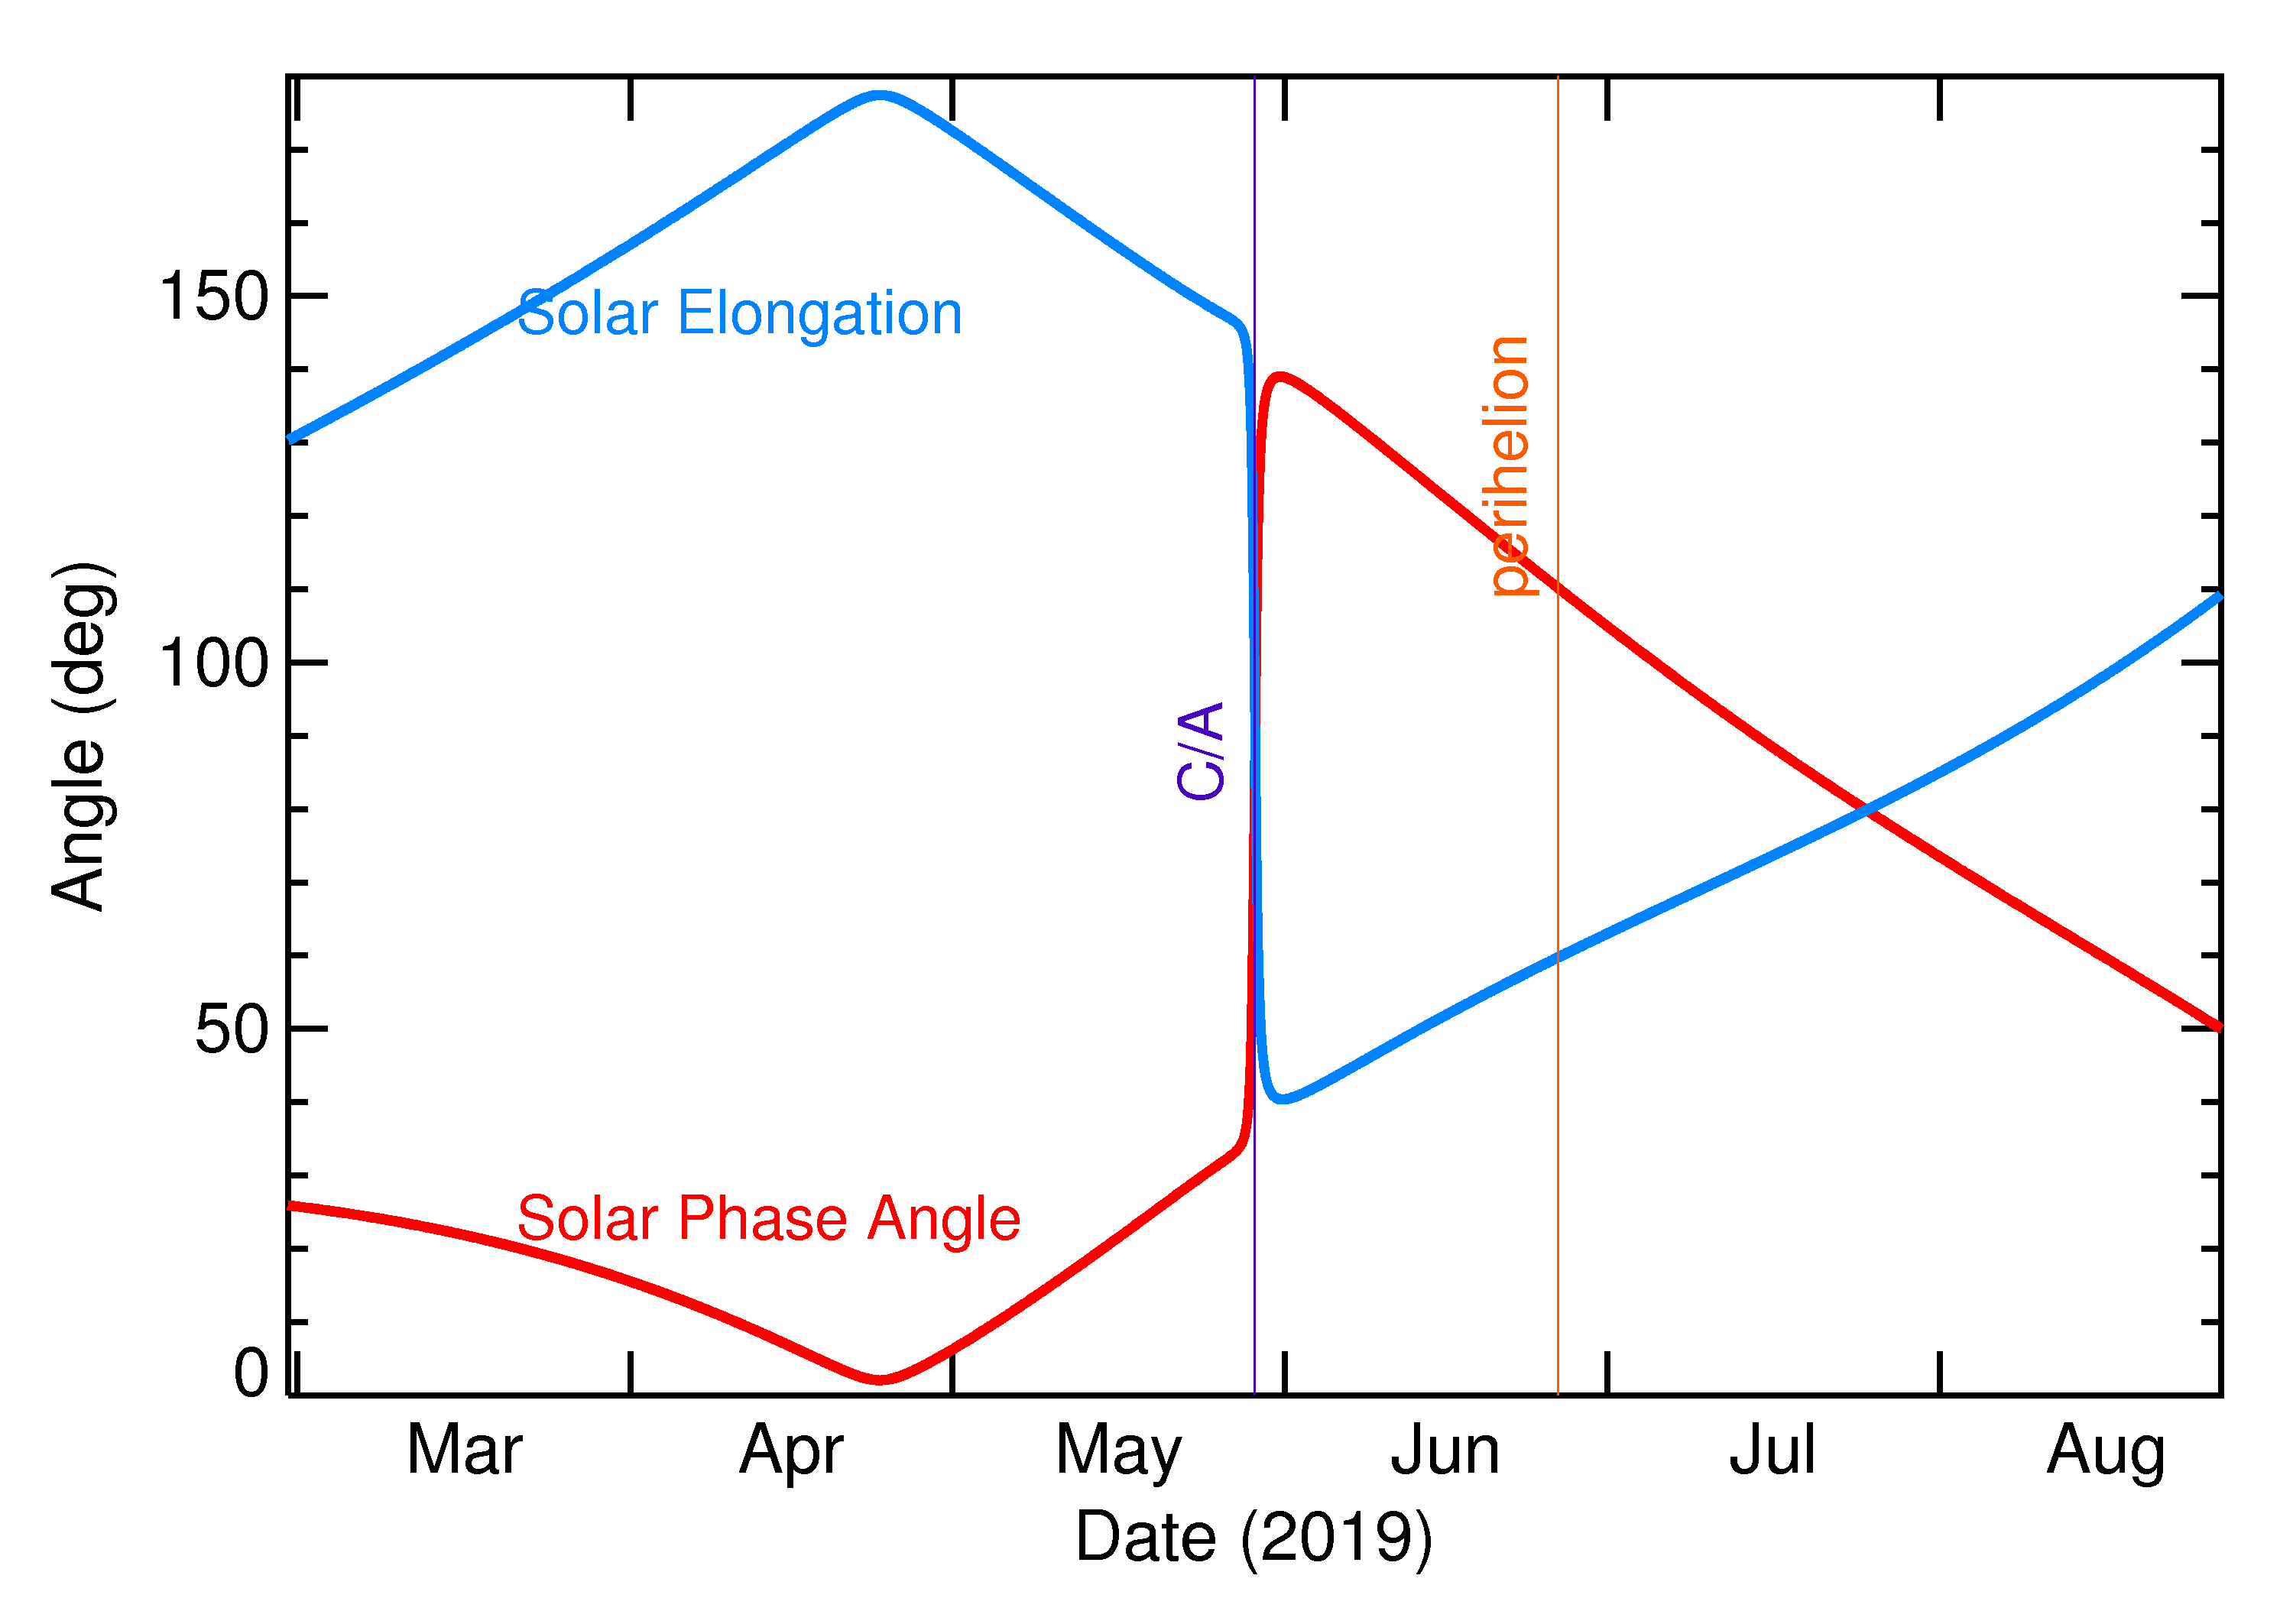 Solar Elongation and Solar Phase Angle of 2019 KT in the months around closest approach